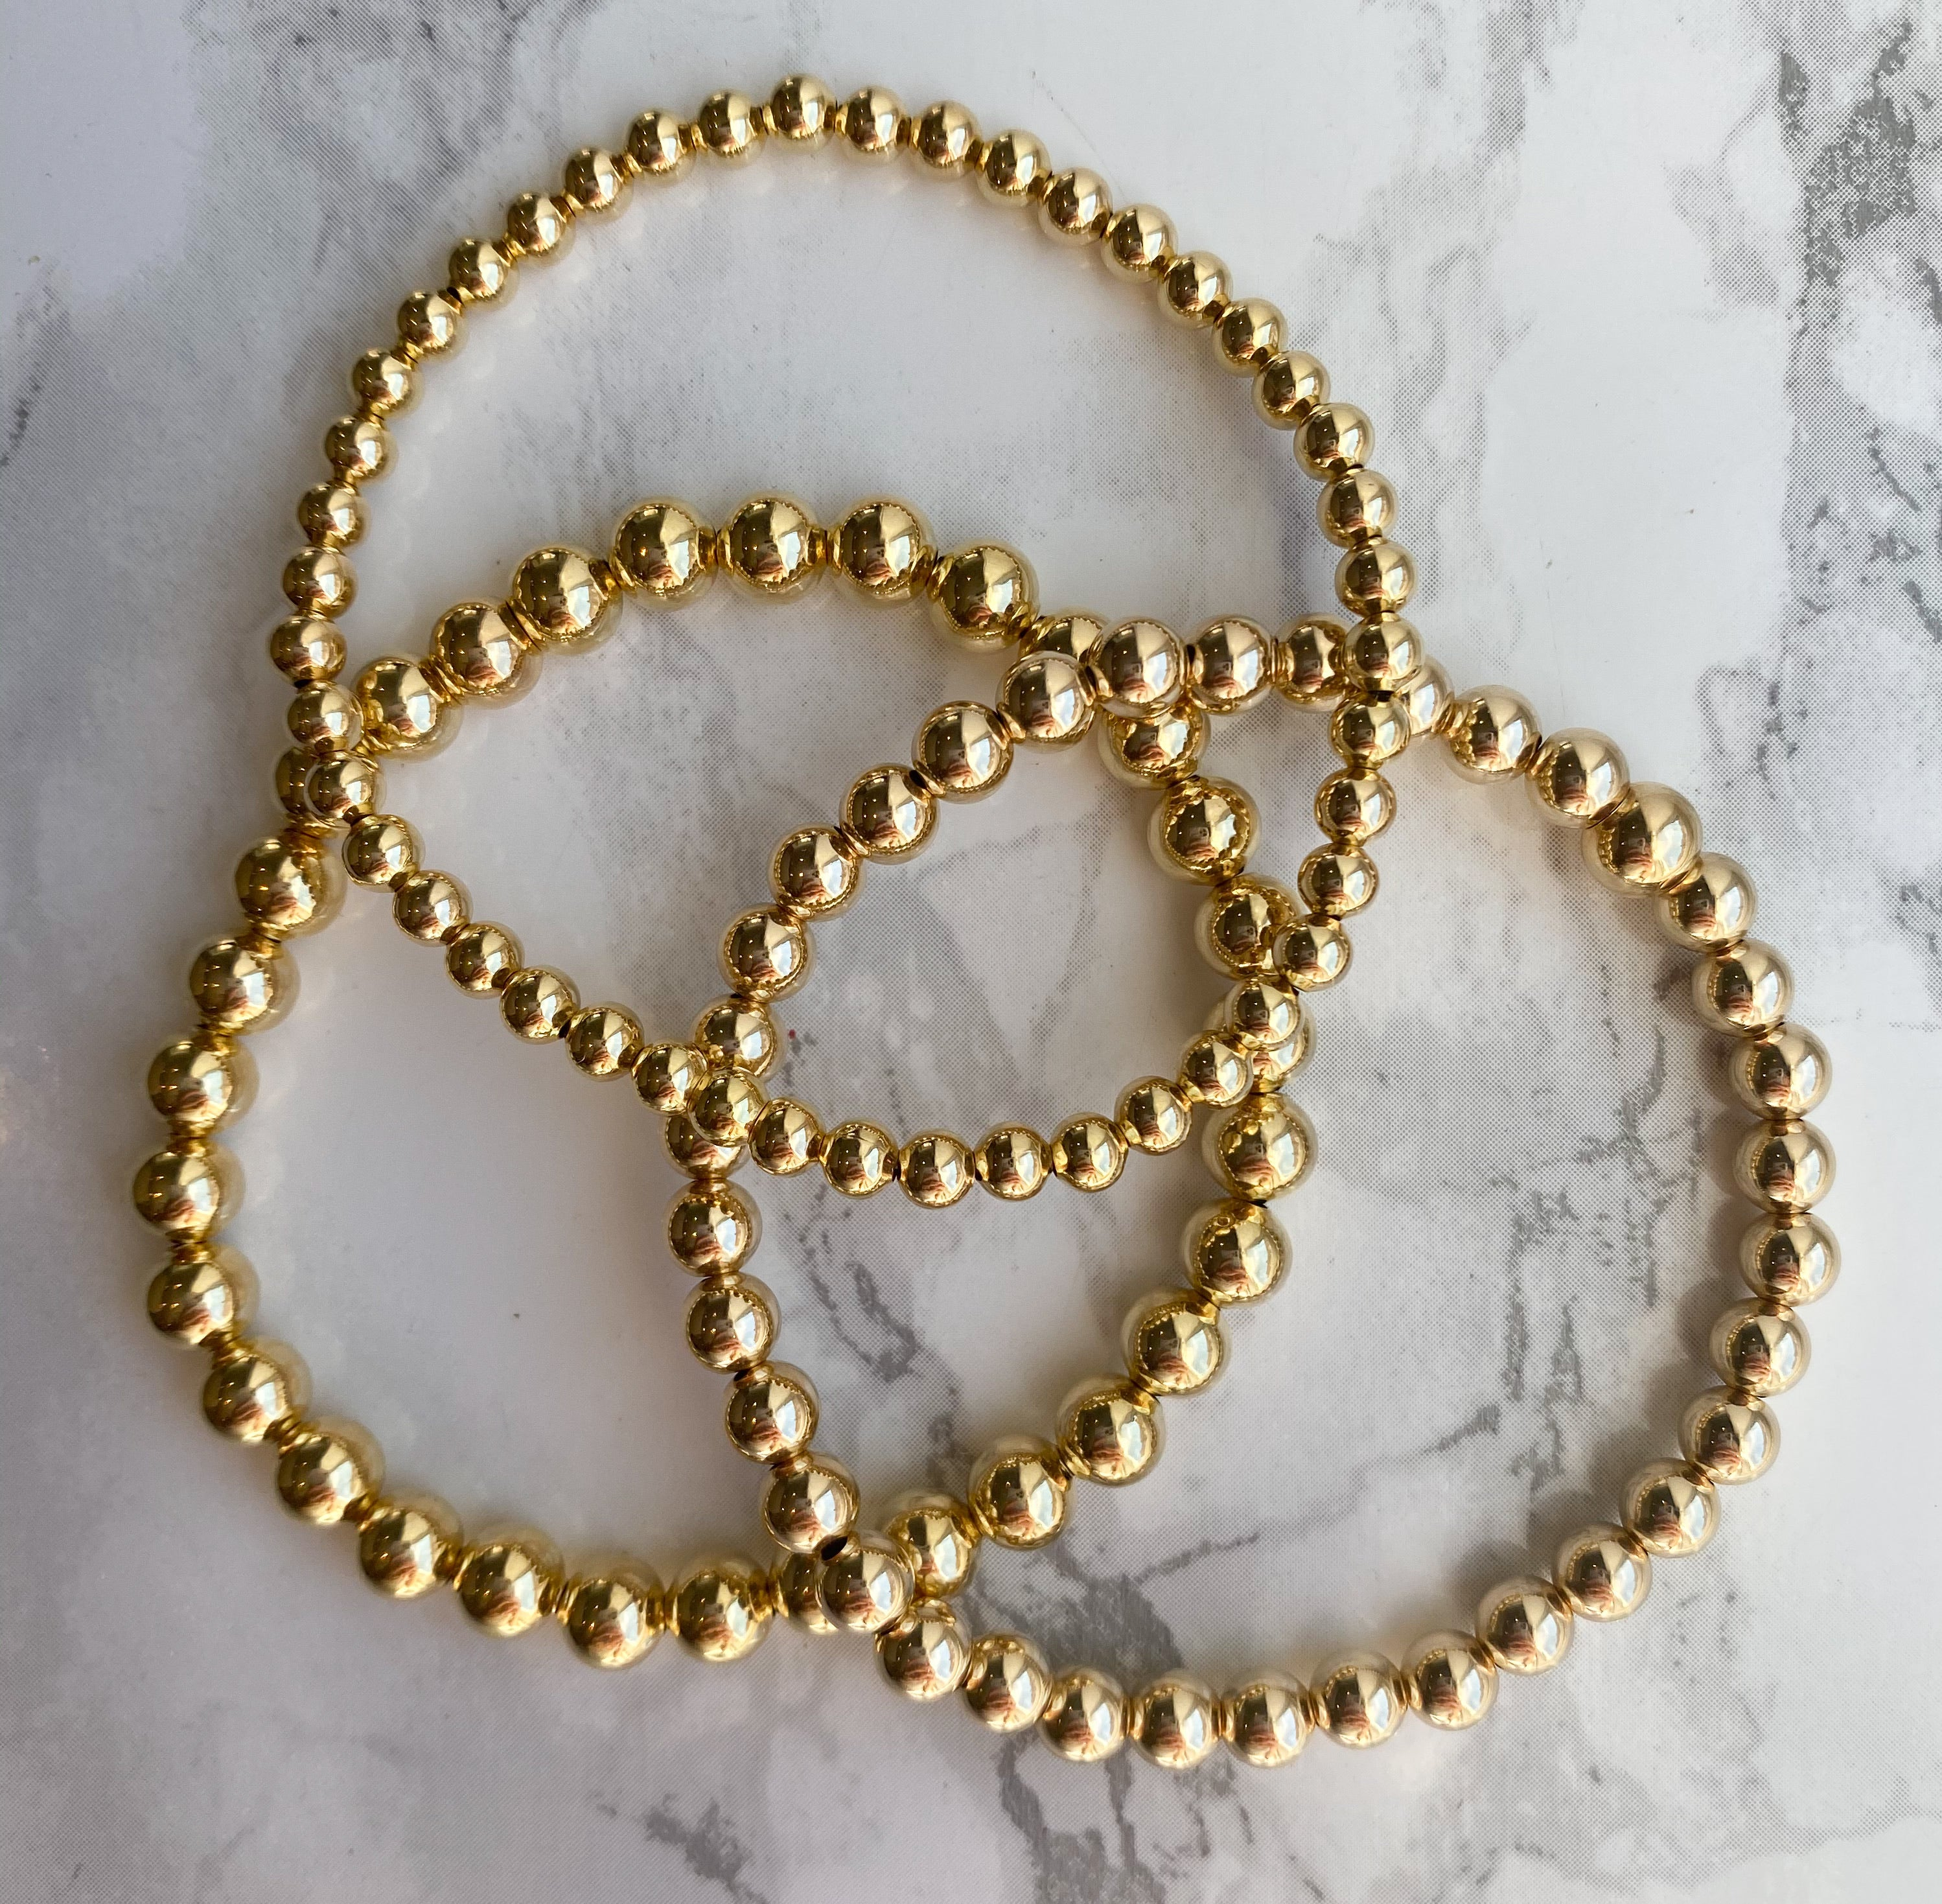 Having A Ball 4mm Gold Filled Bracelet - Rania Dabagh